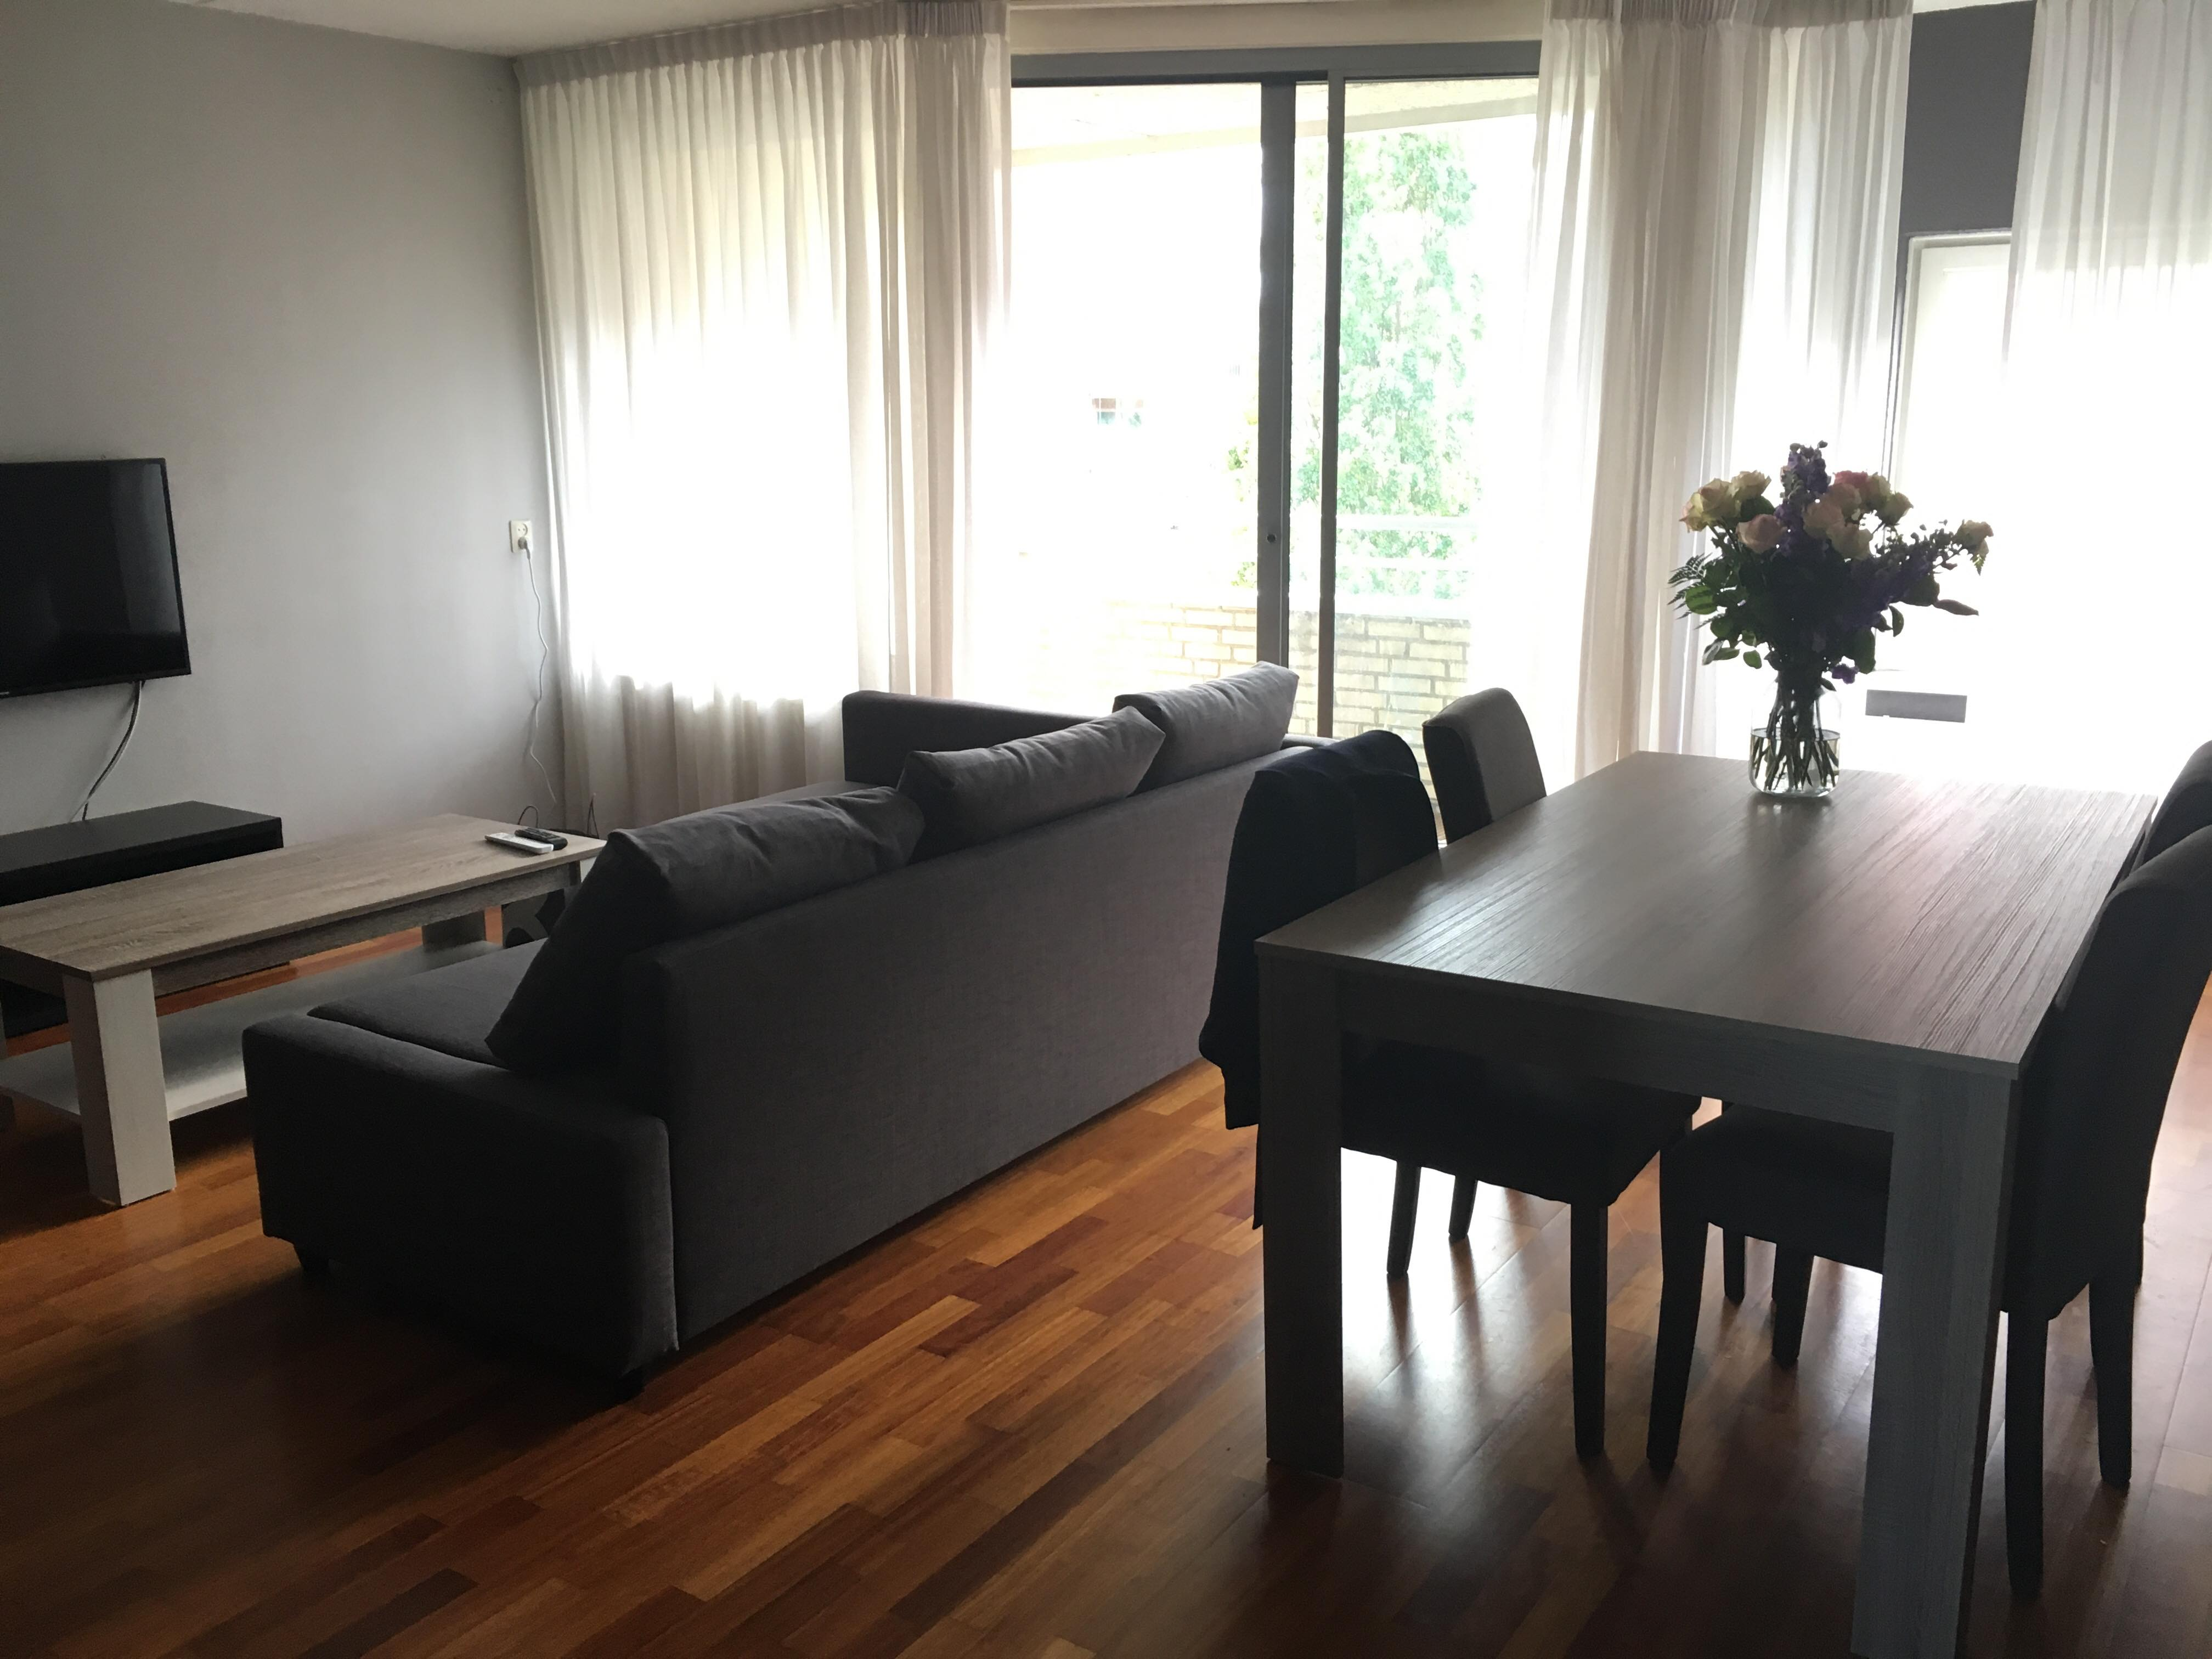 Furnished room for rent (10m2) - Amsterdam south west - female only